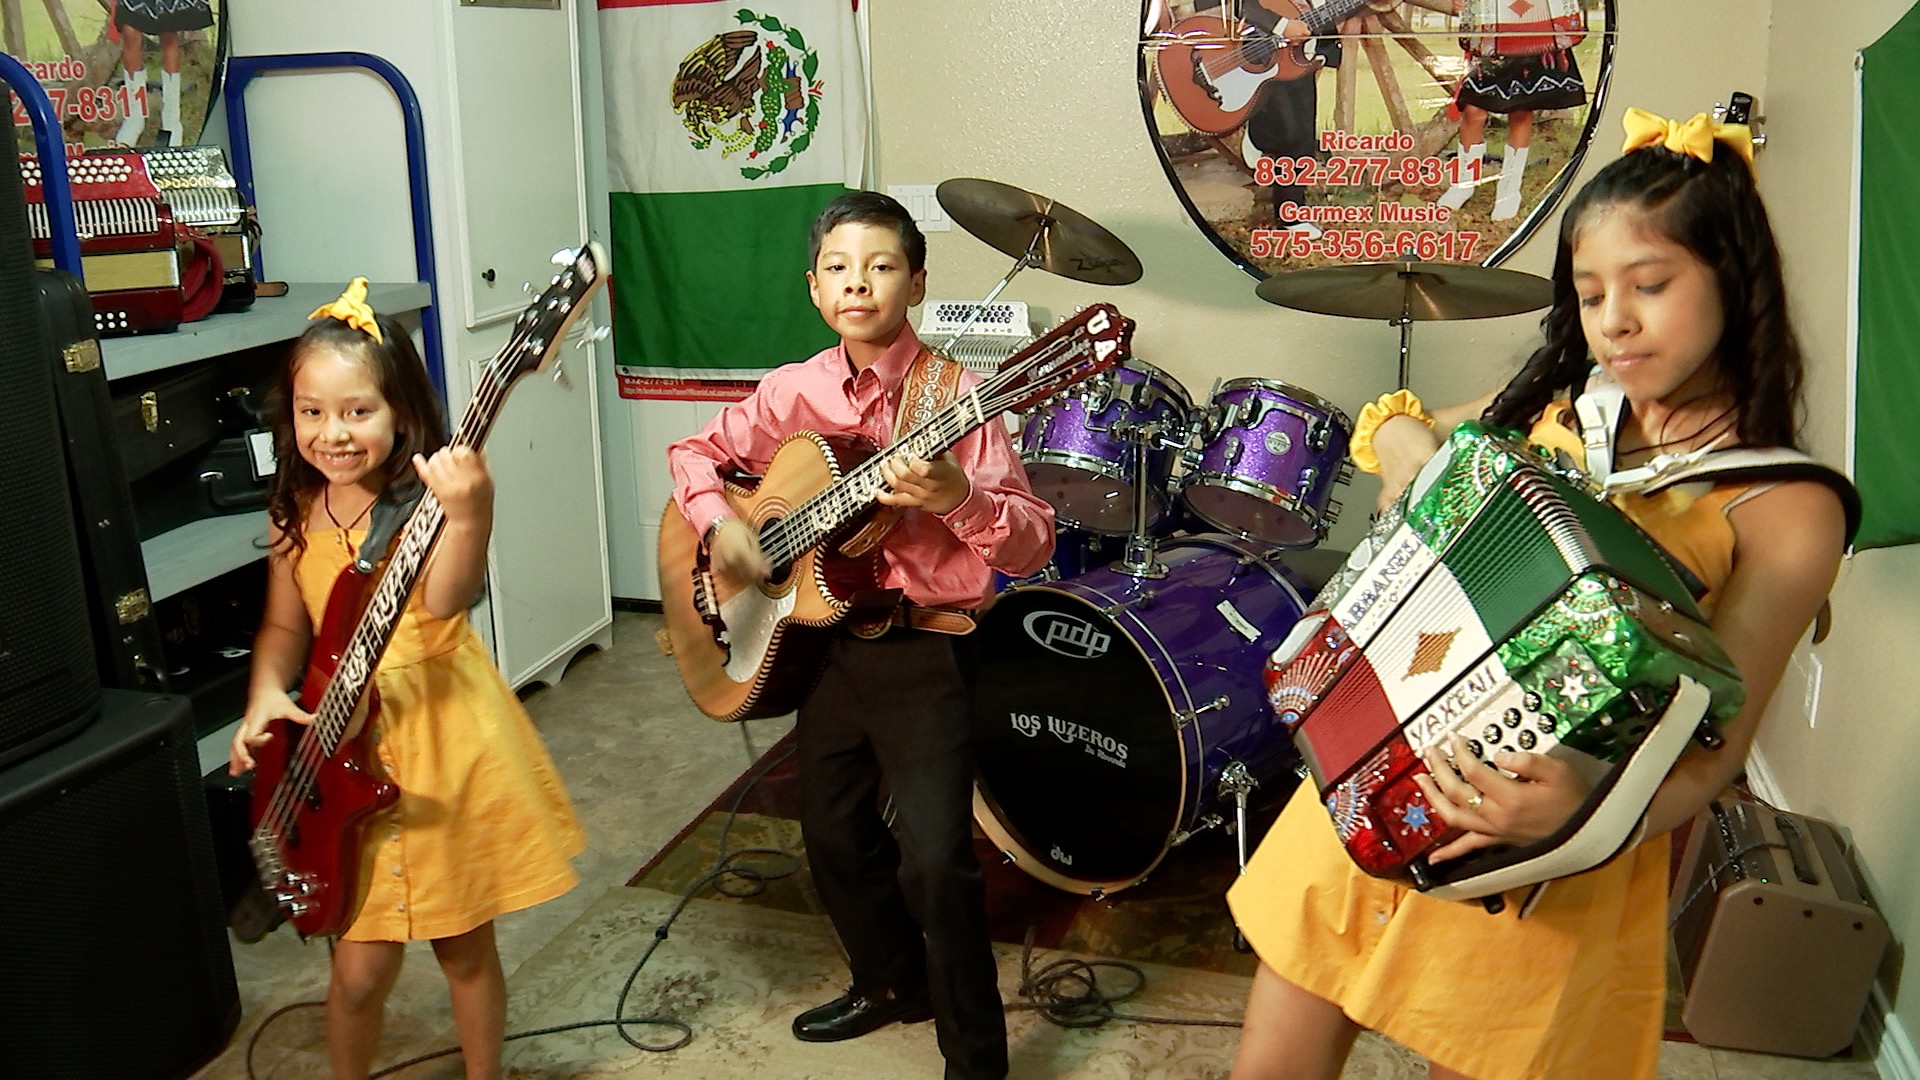 Sibling trio takes Norteño music world by storm